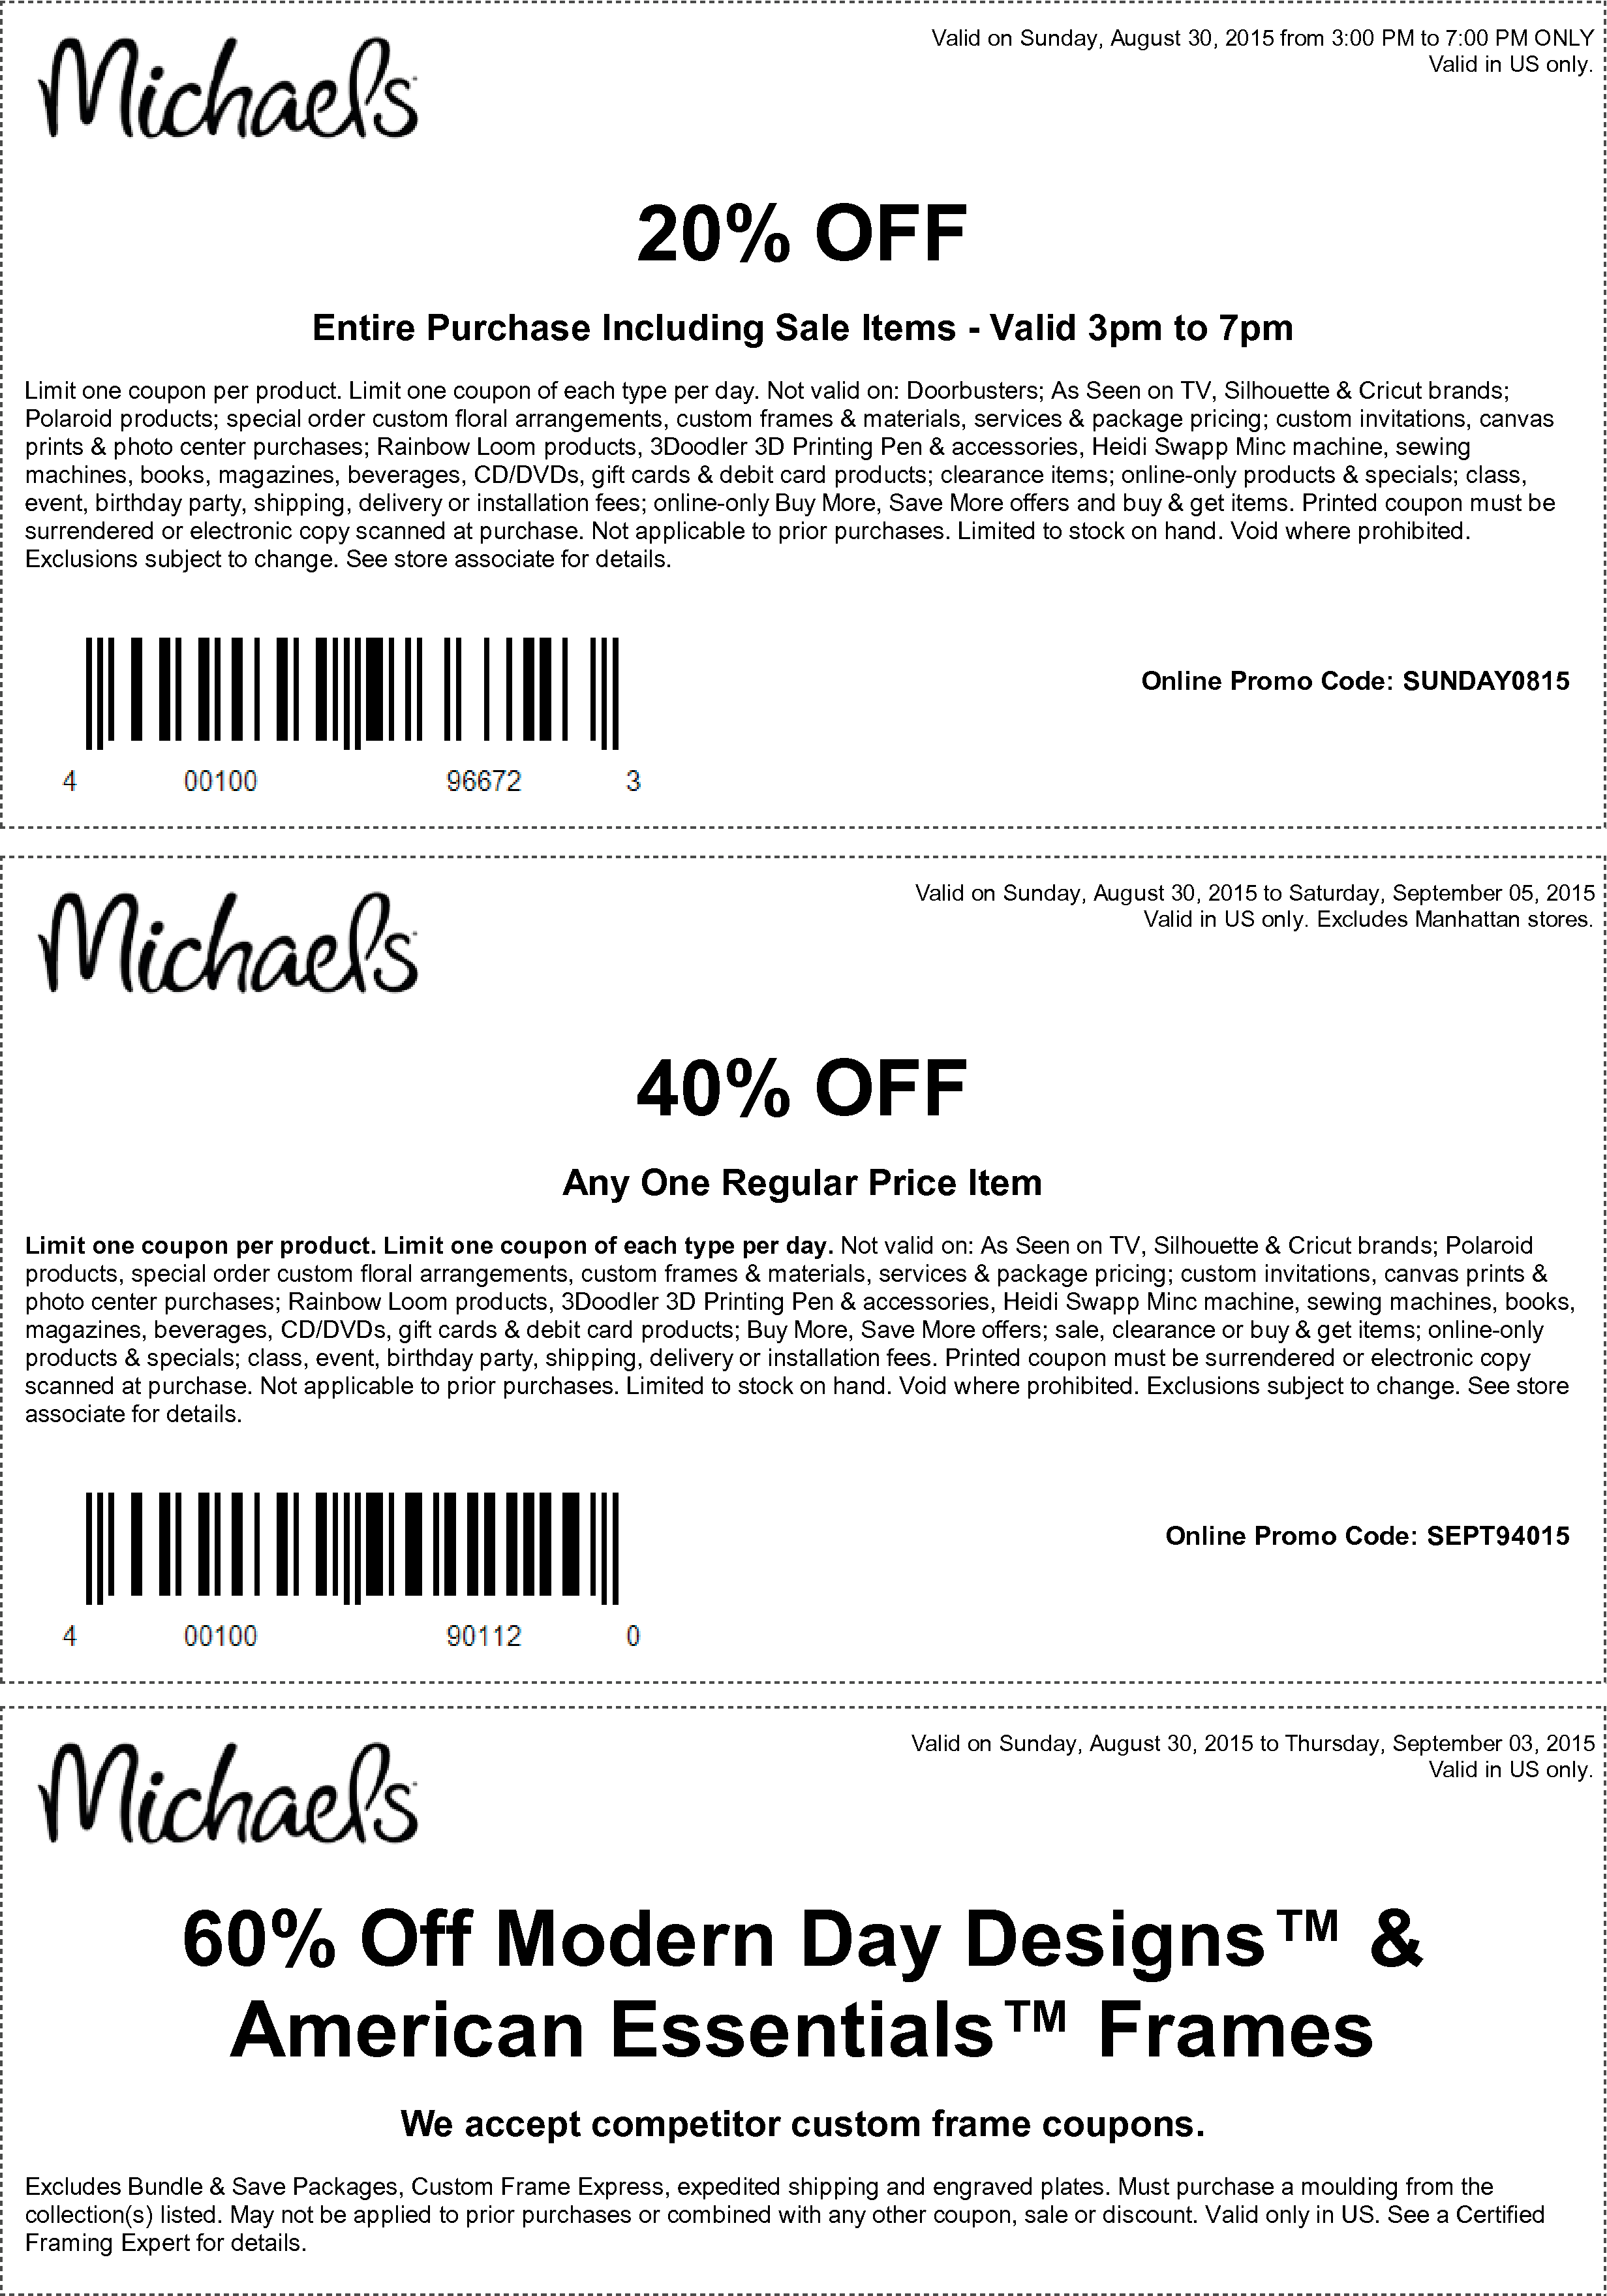 Michaels Coupon November 2018 20% off everything Sunday, or 40% off a single item at Michaels, or online via promo code SEPT94015